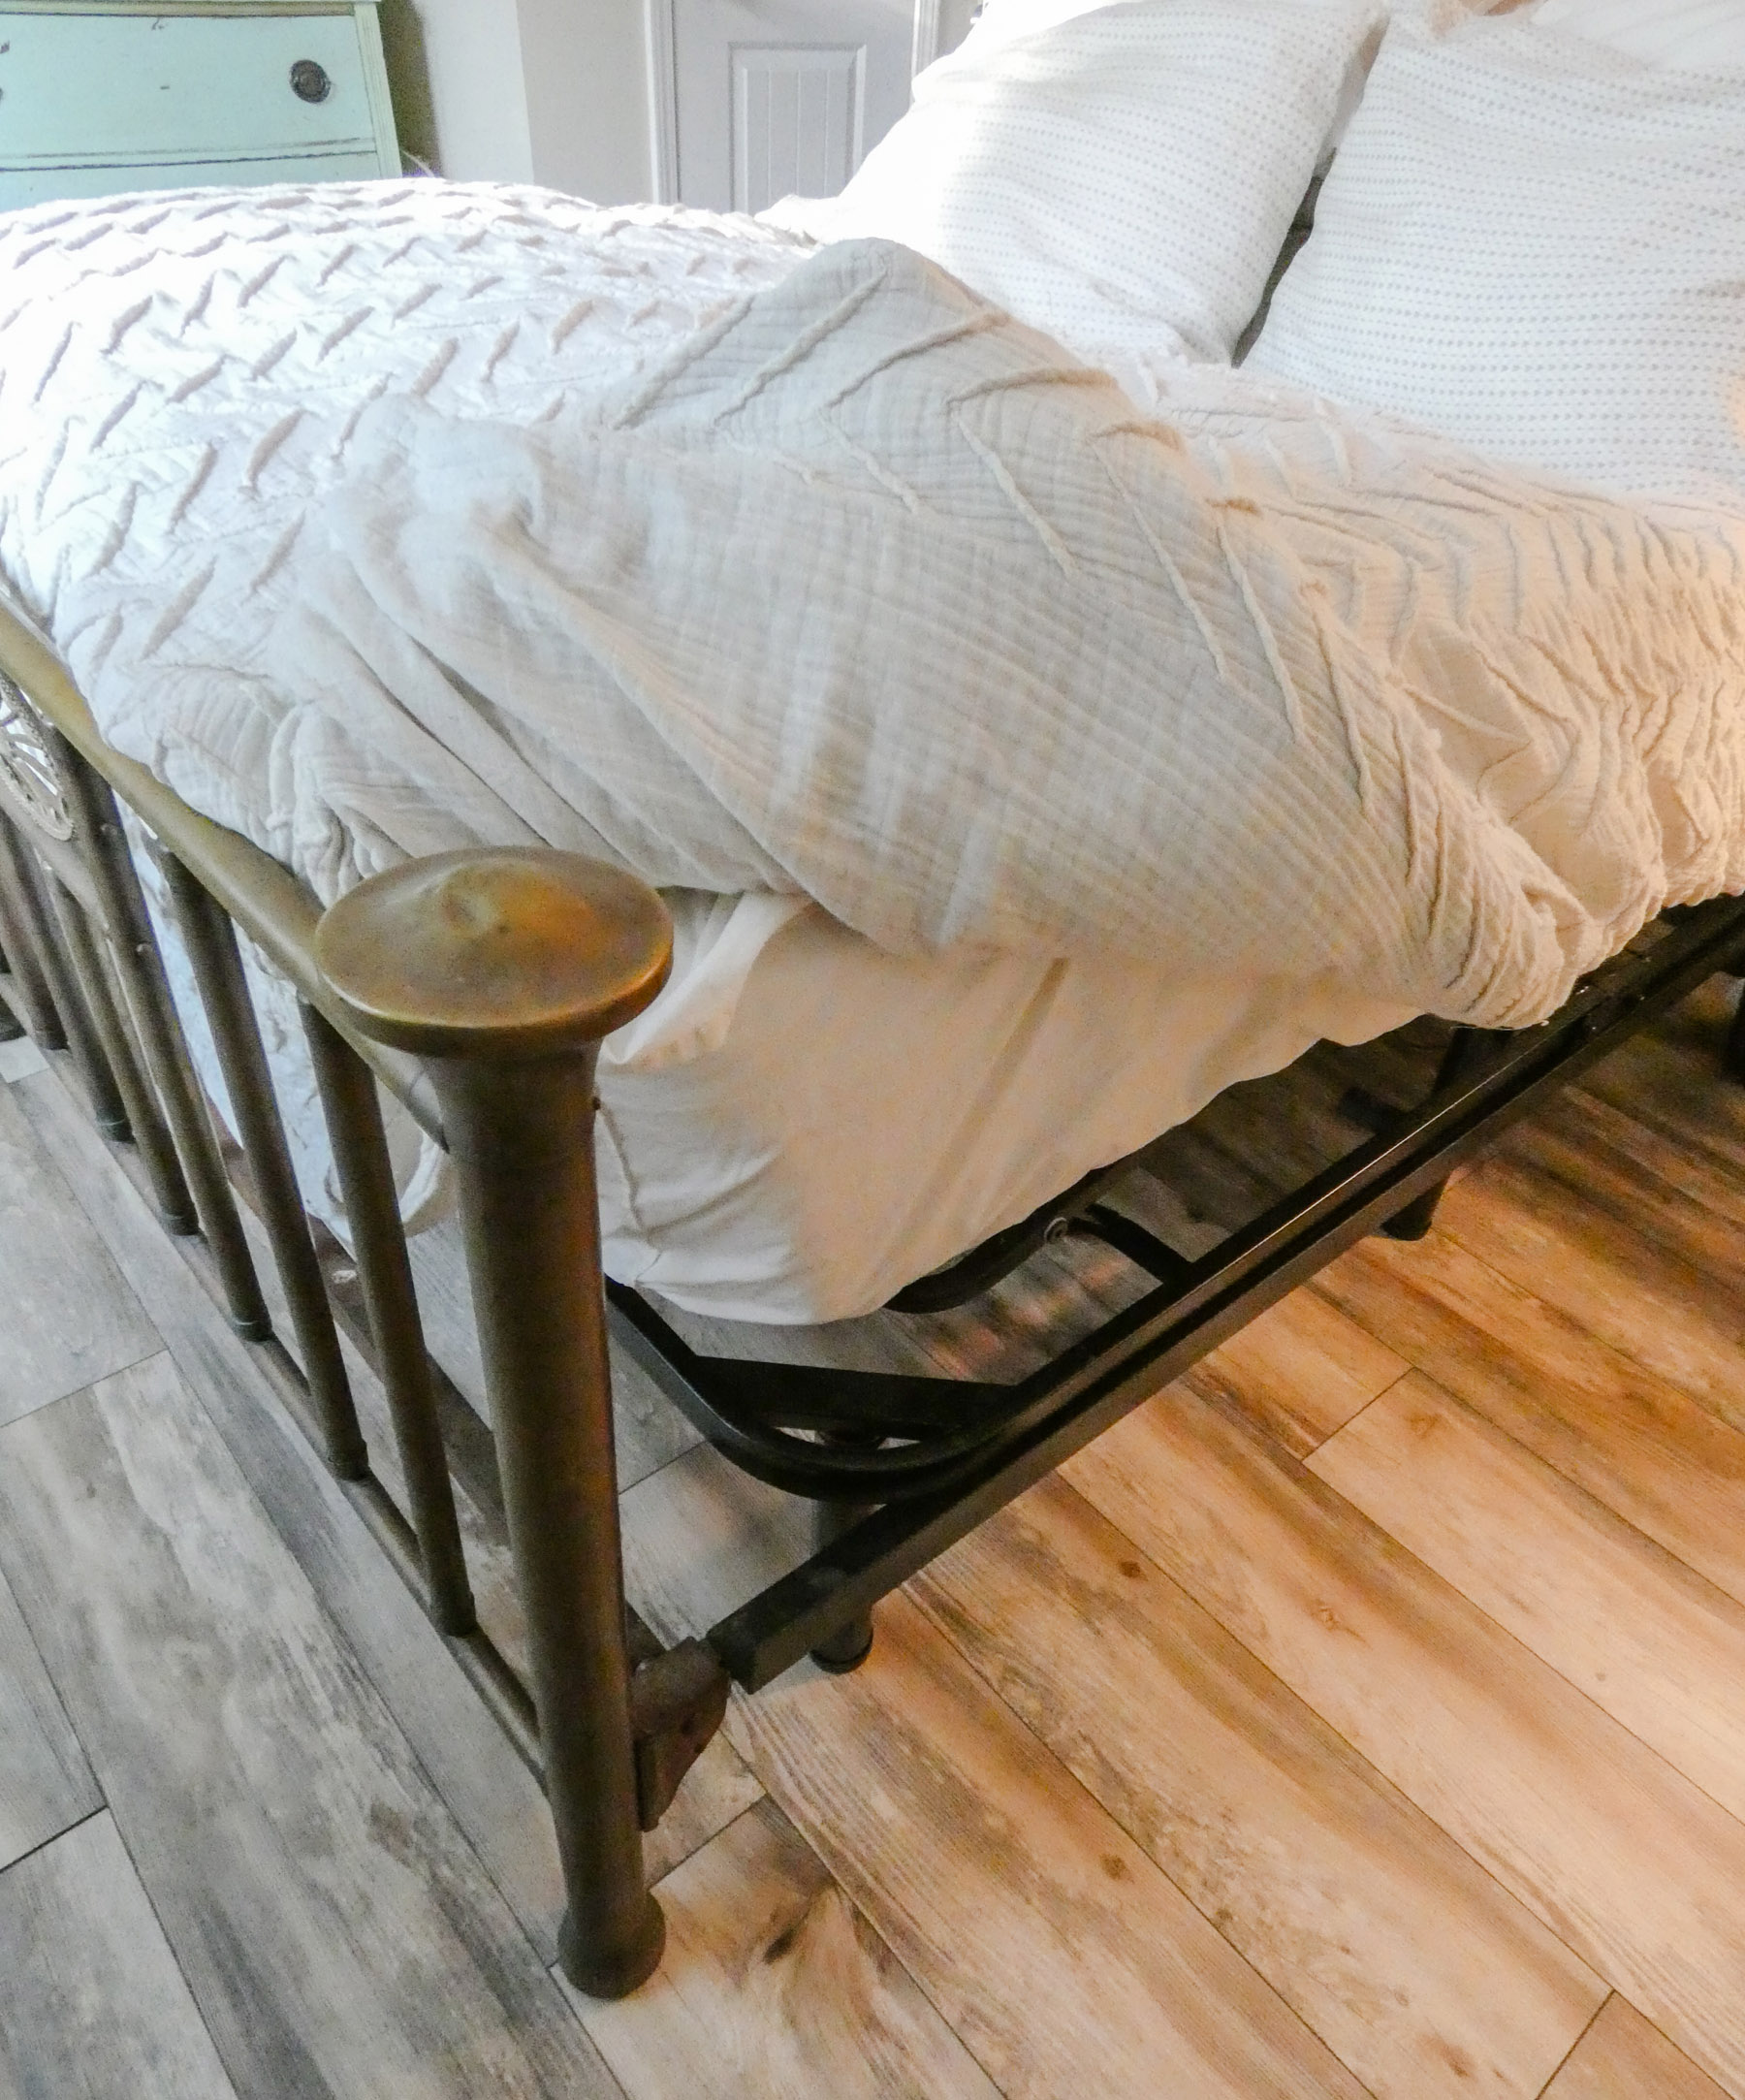 An adjustable base bed paired with an antique bedframe.